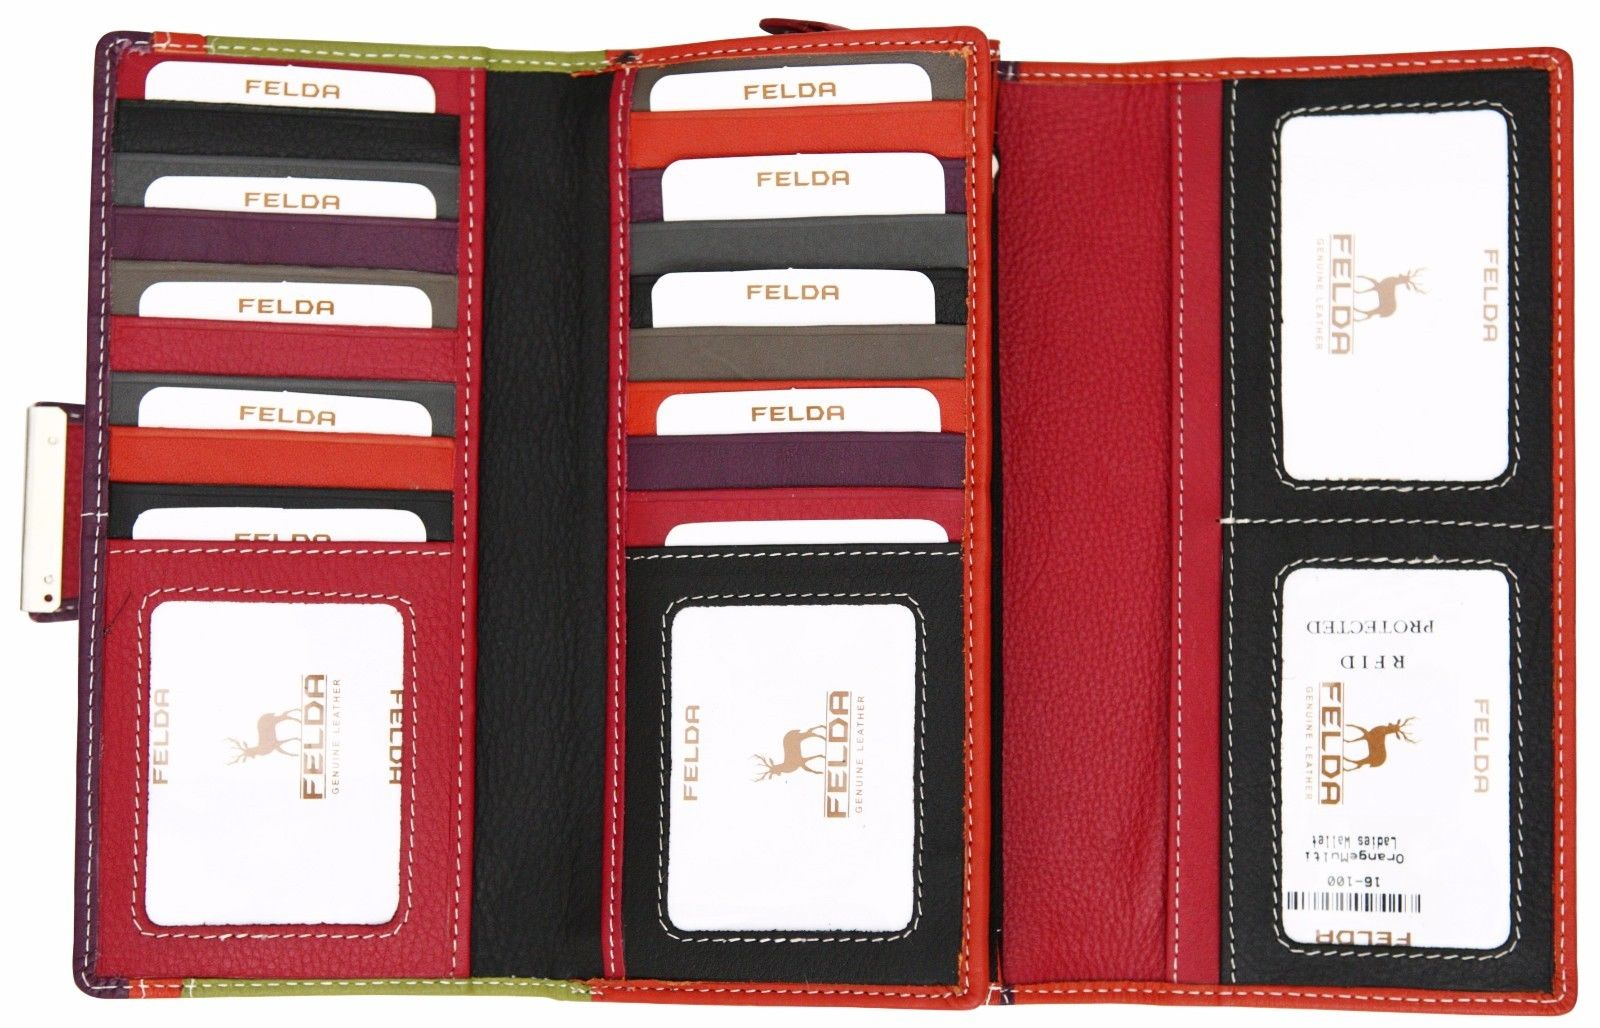 Felda-RFID-Ladies-Leather-Soft-Wallet-Large-Capacity-Purse-Womens-Multi-24-Card miniatuur 45